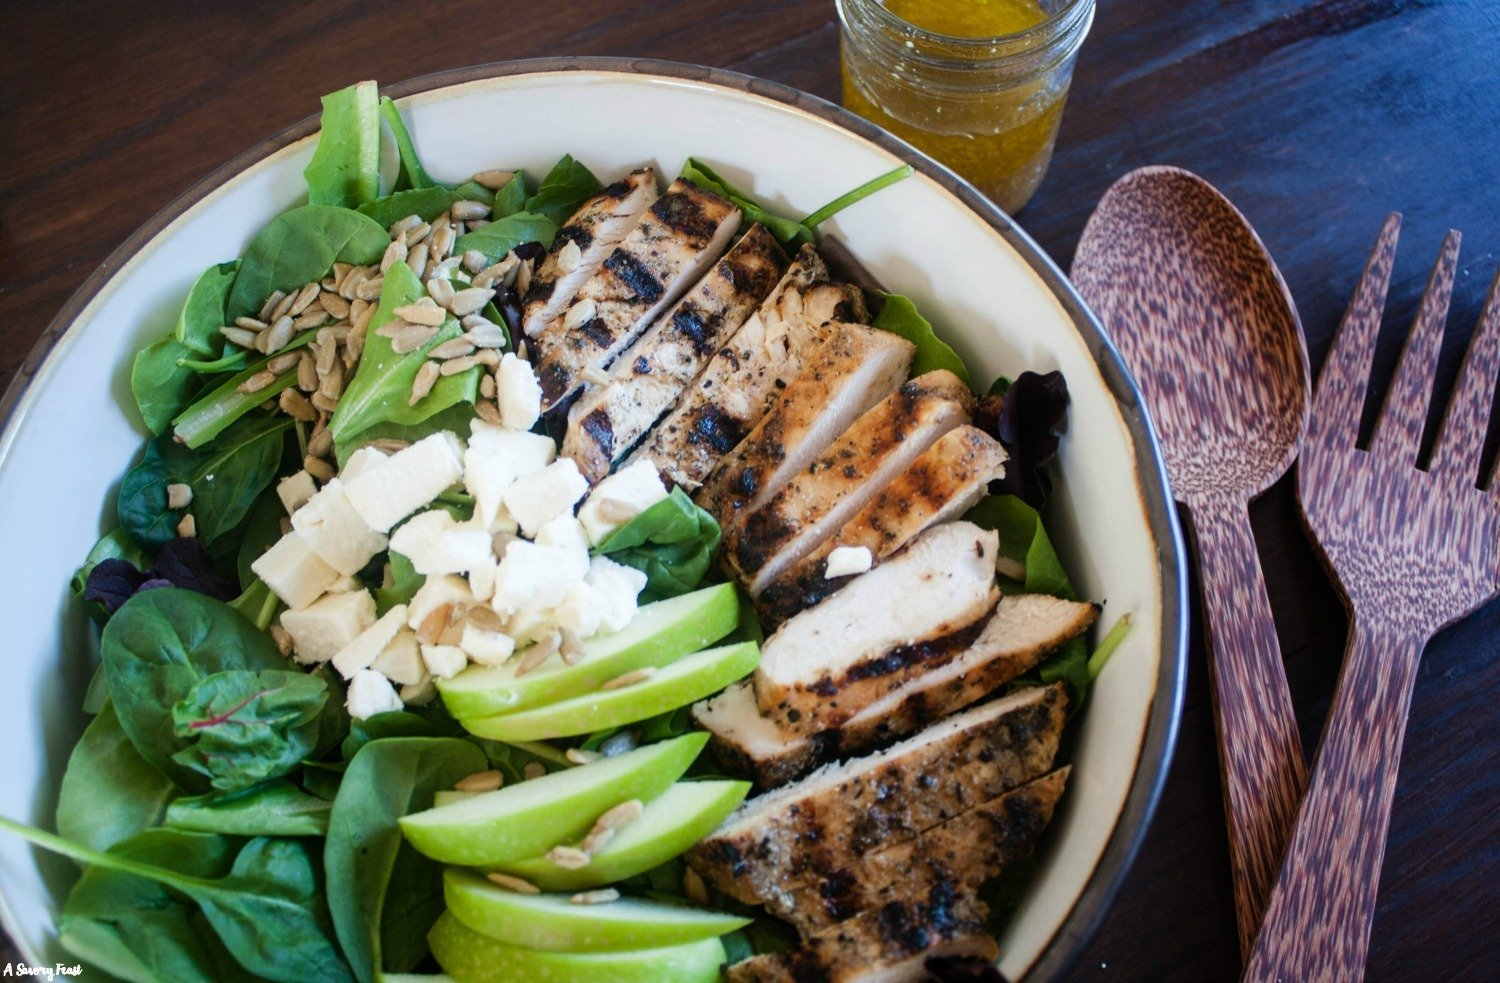 Sweet, tangy and savory come together in this beautiful Grilled Chicken and Apple Salad with Homemade Apple Vinaigrette.